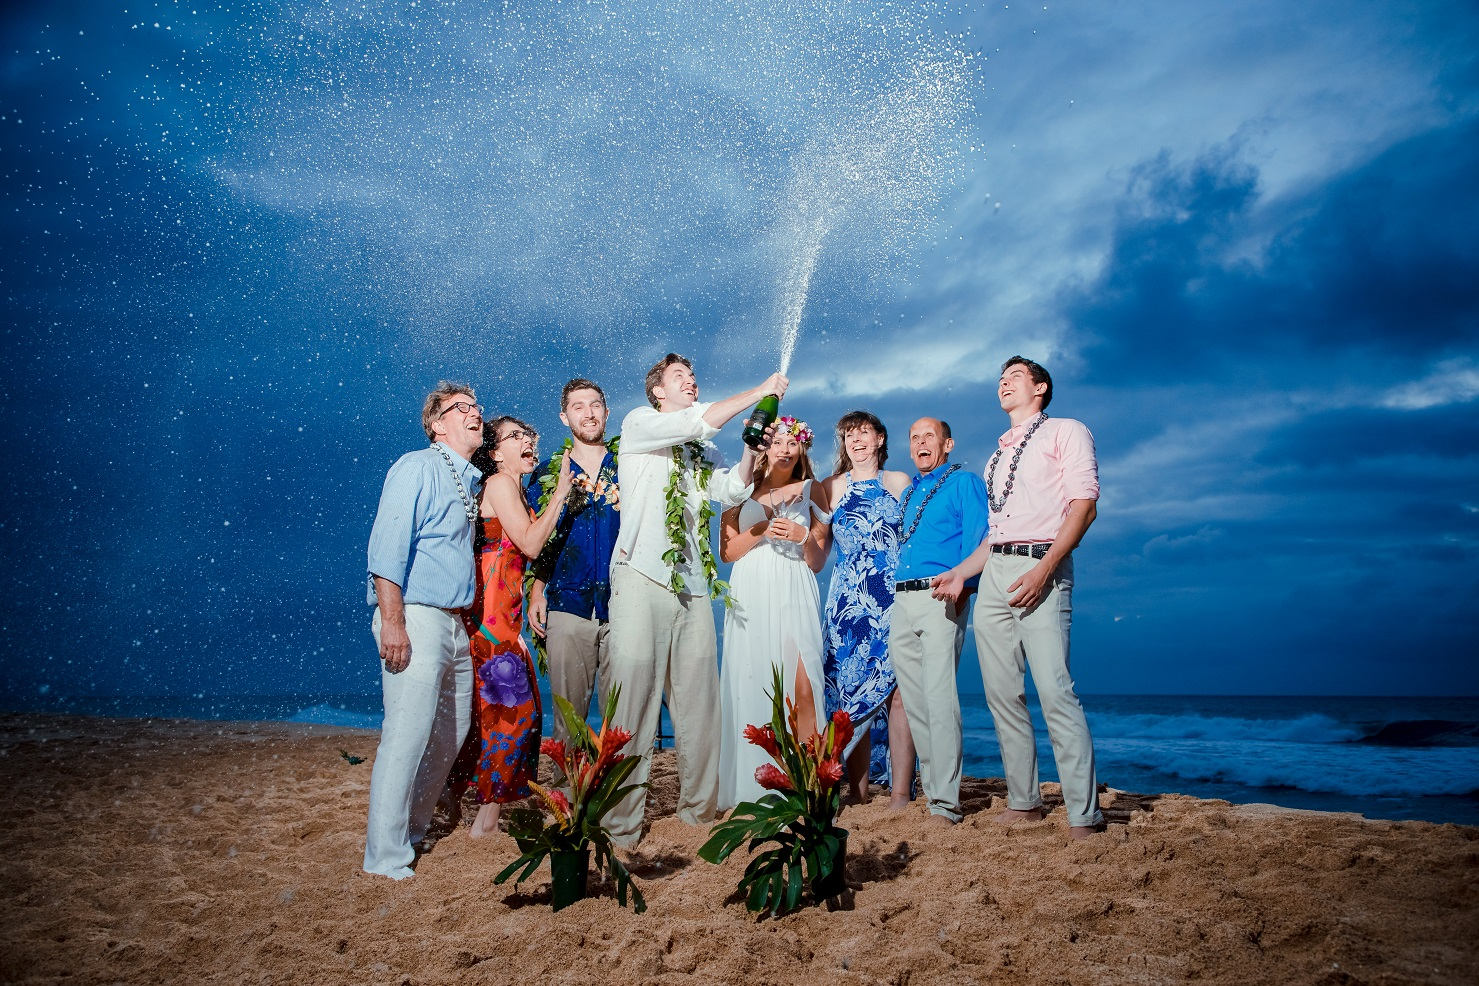 hawaii sunset beach wedding champagne celebration